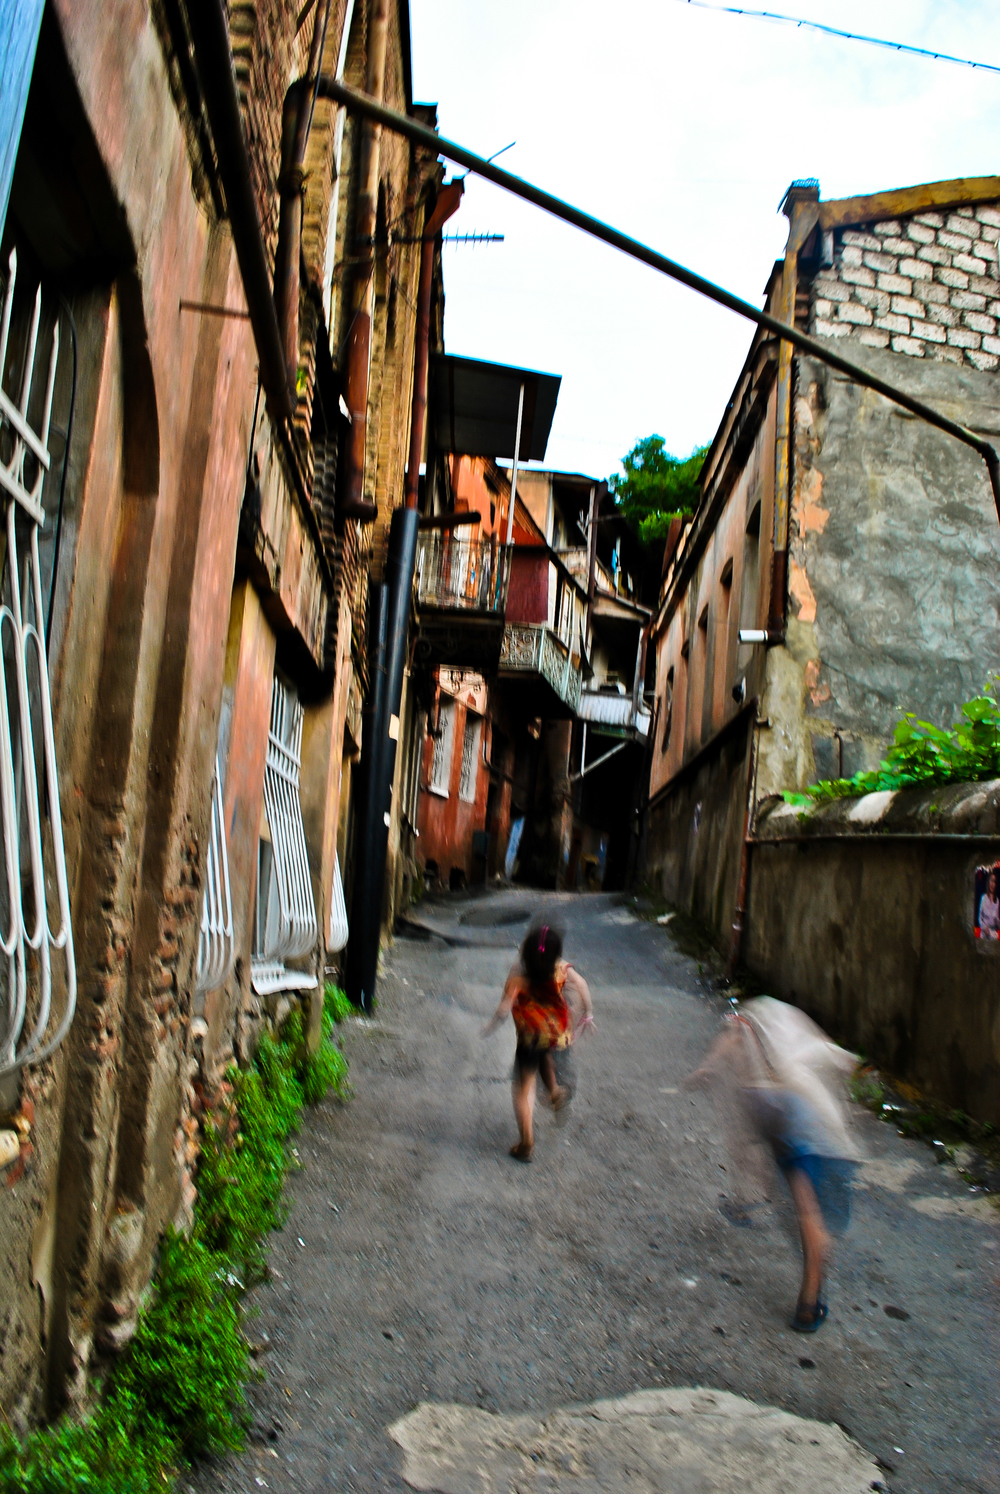 Children playing in the streets of Tbilisi's old city in the Republic of Georgia.